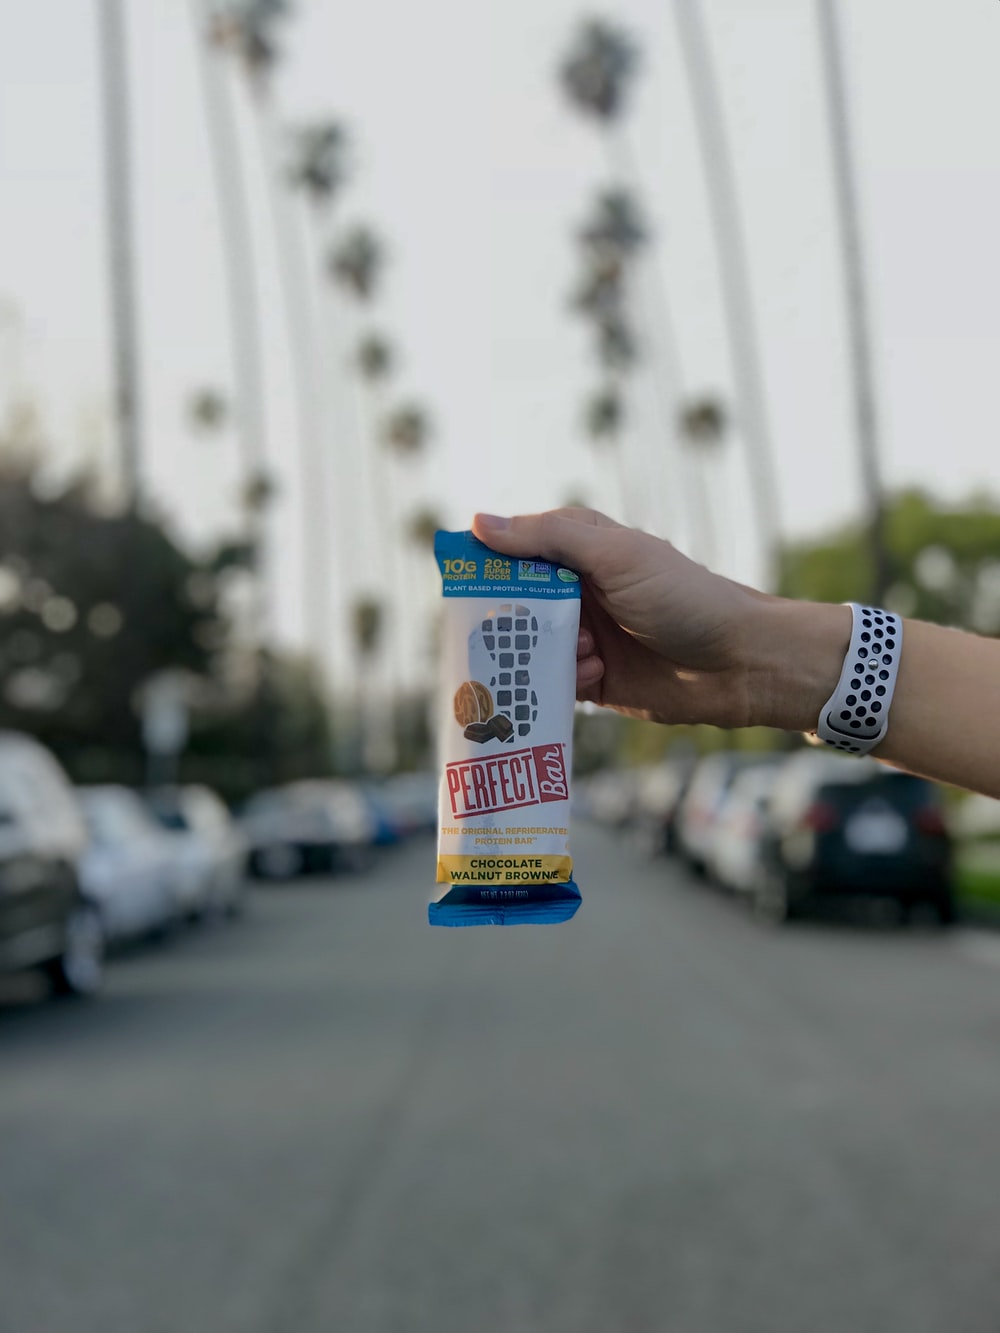 person holding white and blue labeled pack